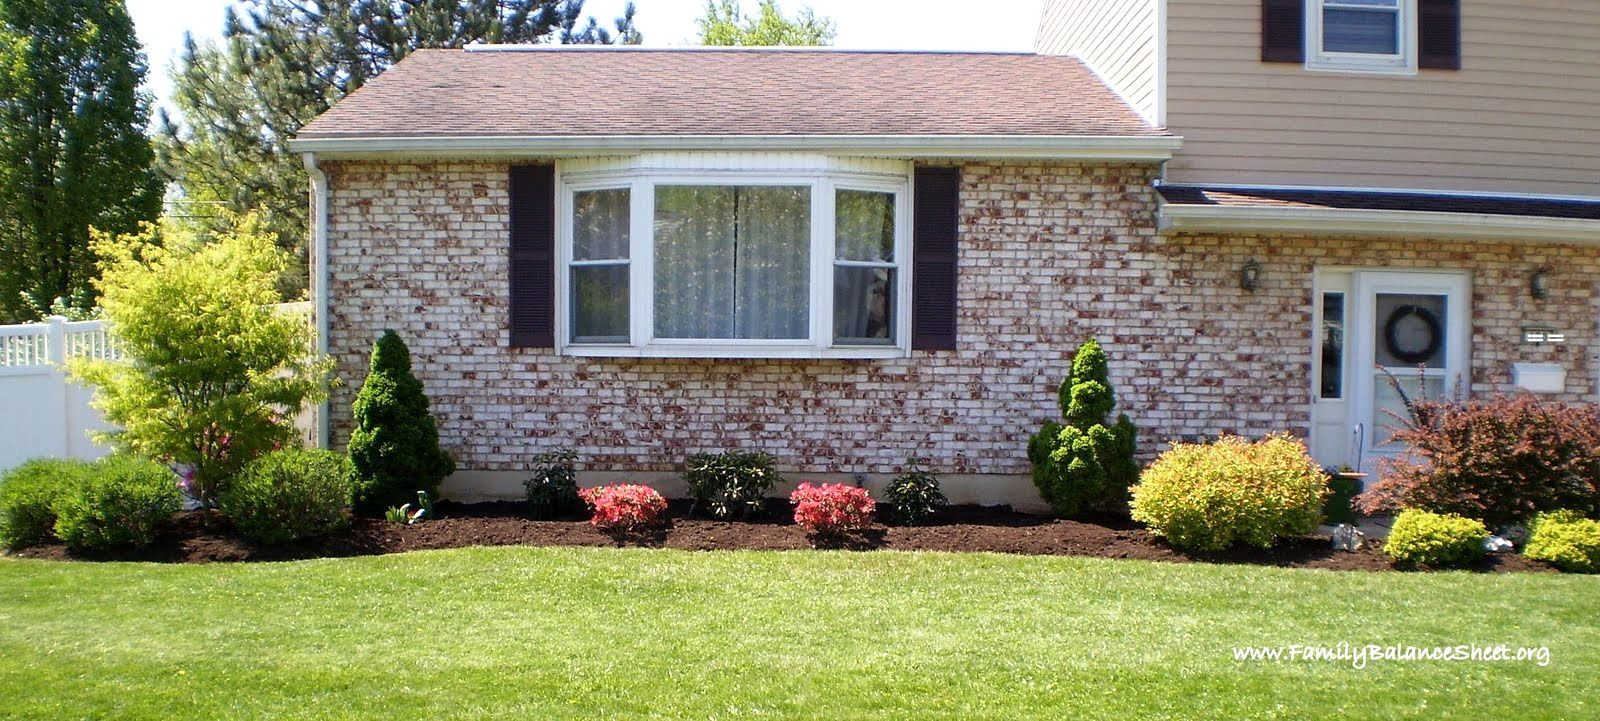 Landscaping ideas front yard ranch style home front yard for Basic landscaping ideas for front yard